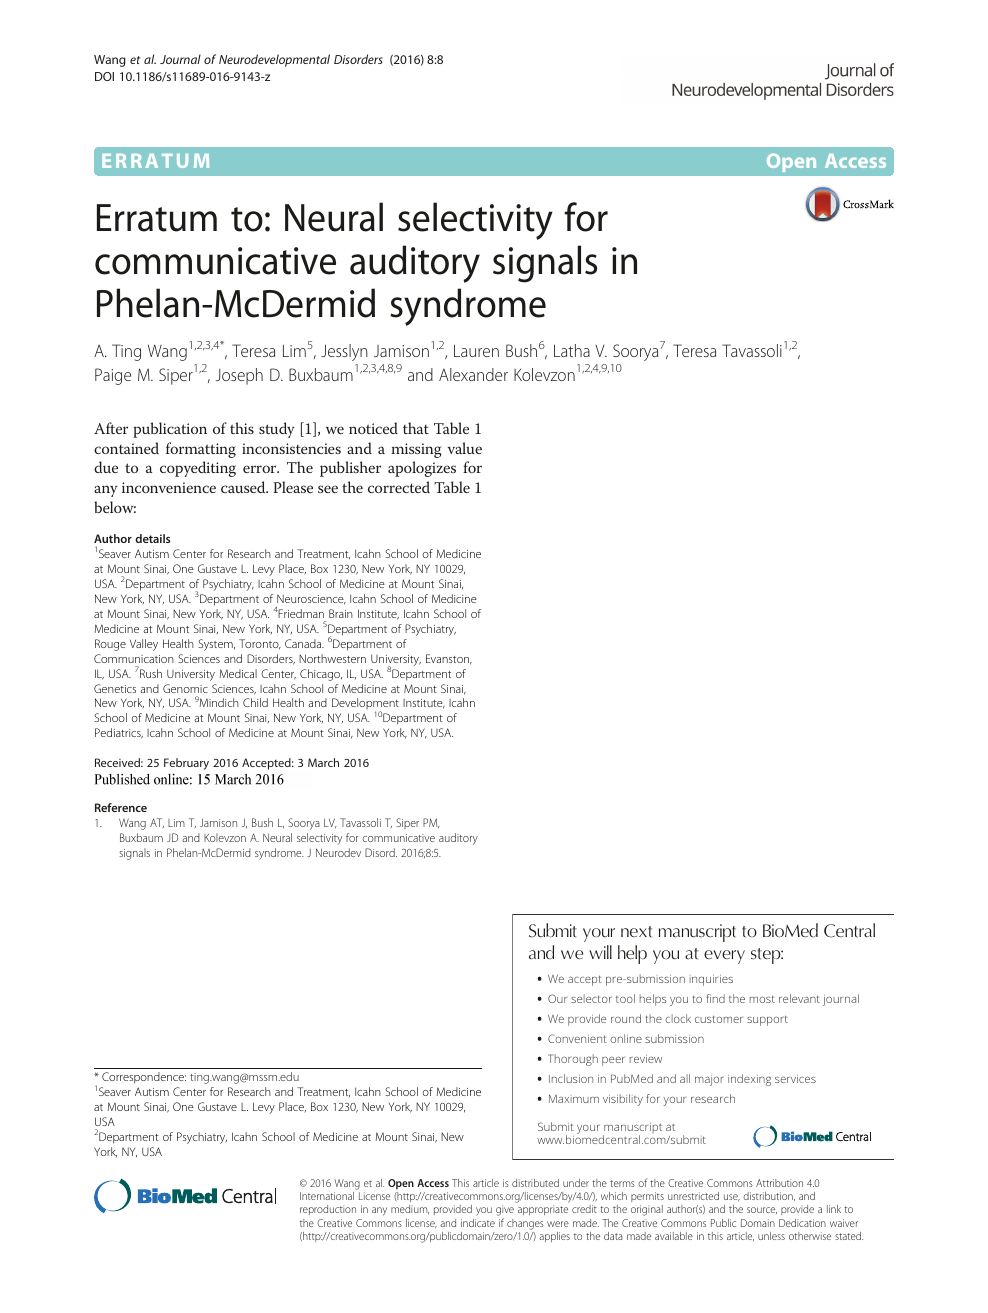 Erratum to: Neural selectivity for communicative auditory